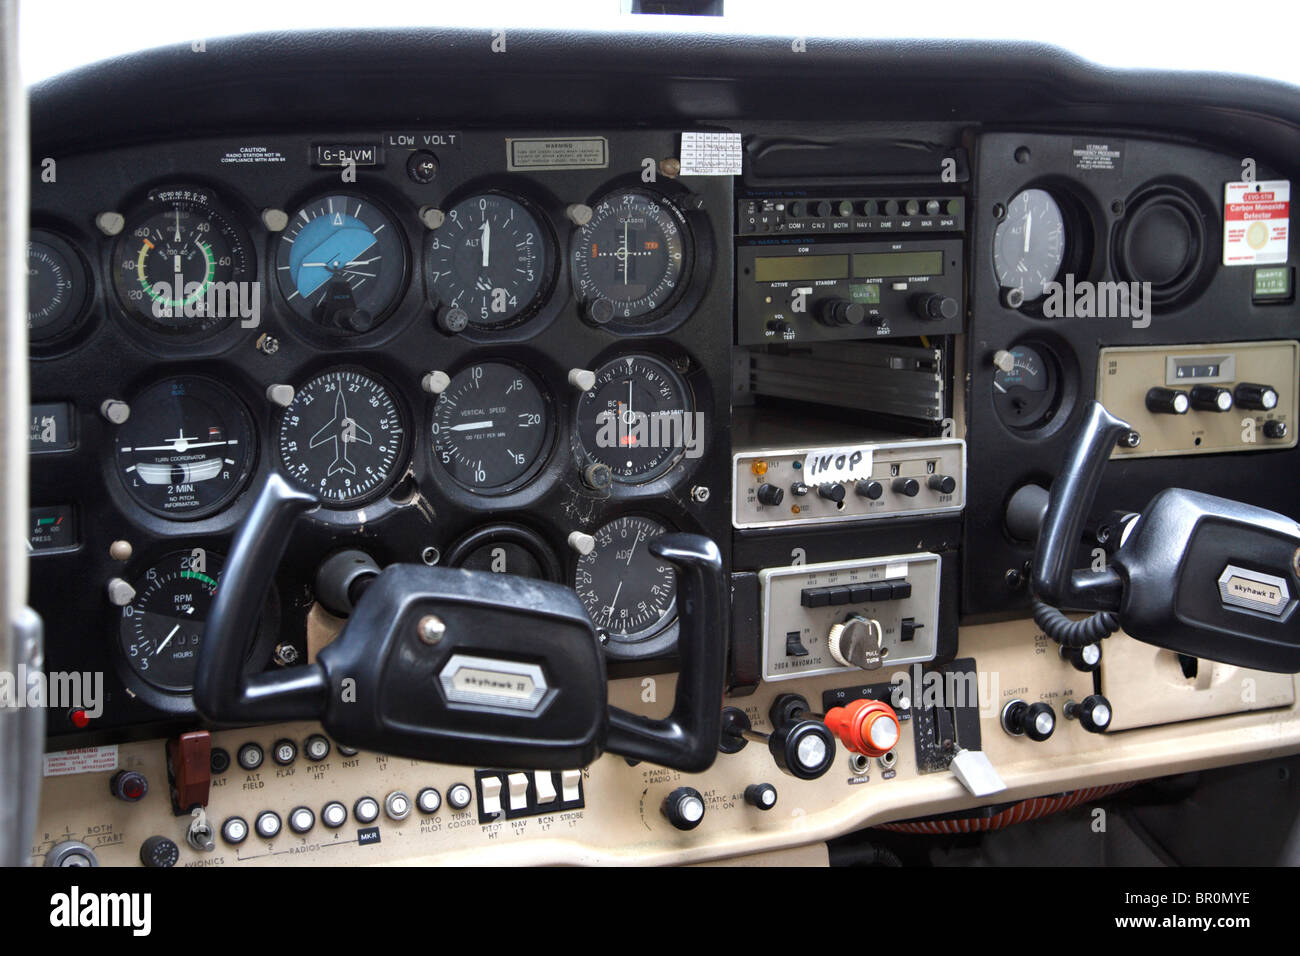 Airplane Instrument Panel : Light aircraft instrument panel stock photo royalty free